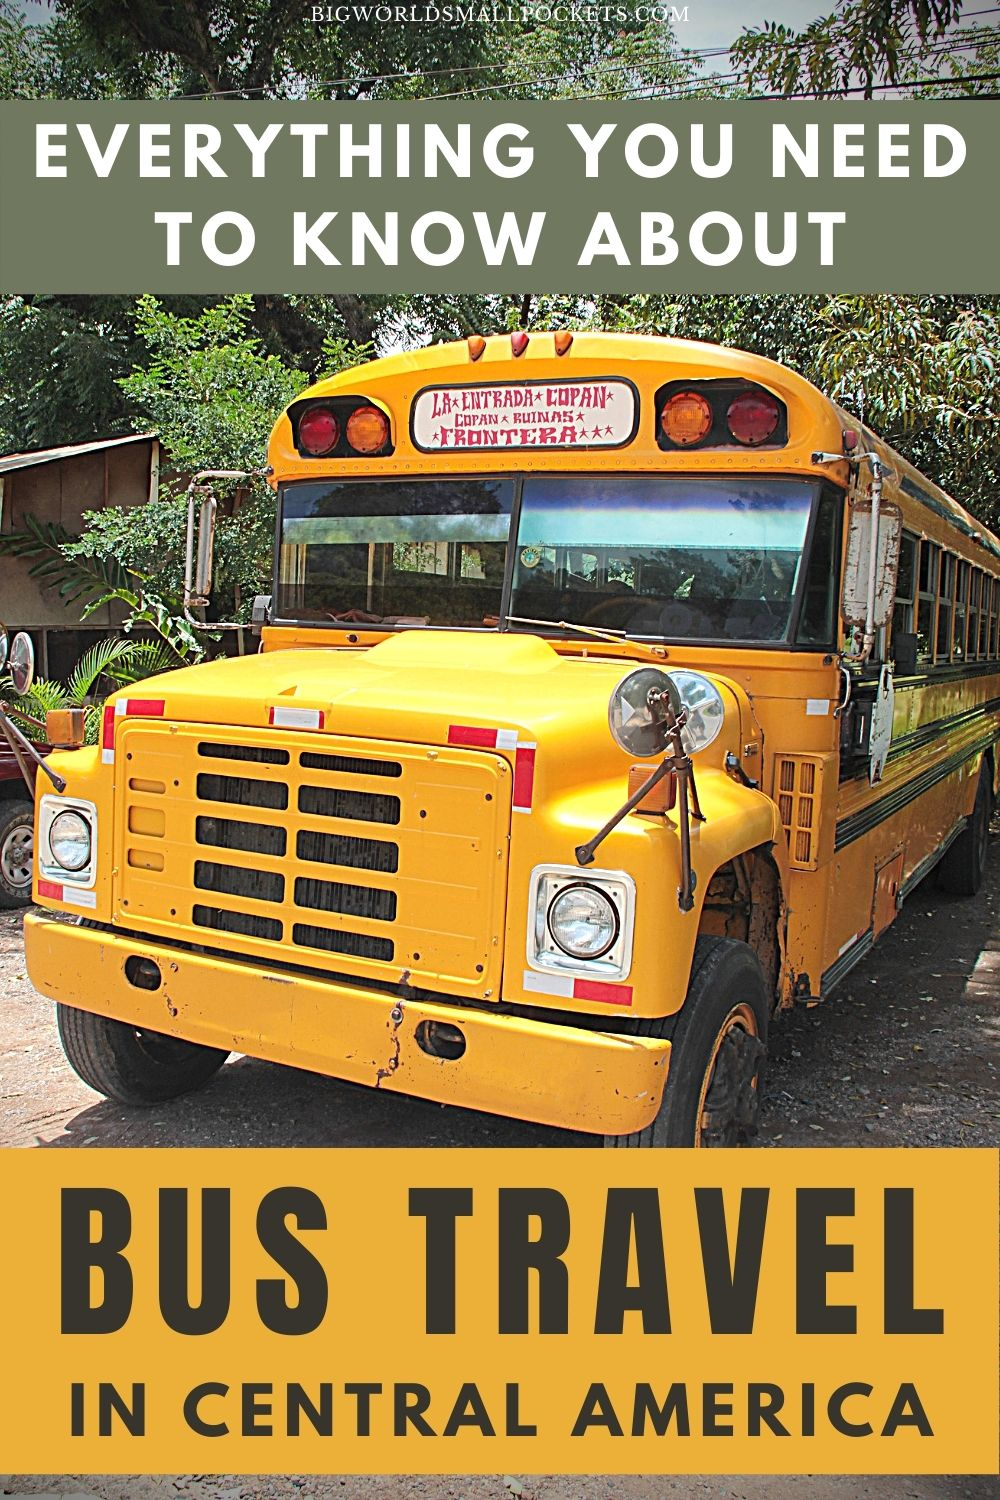 All You Need To Know About Bus Travel In Central America